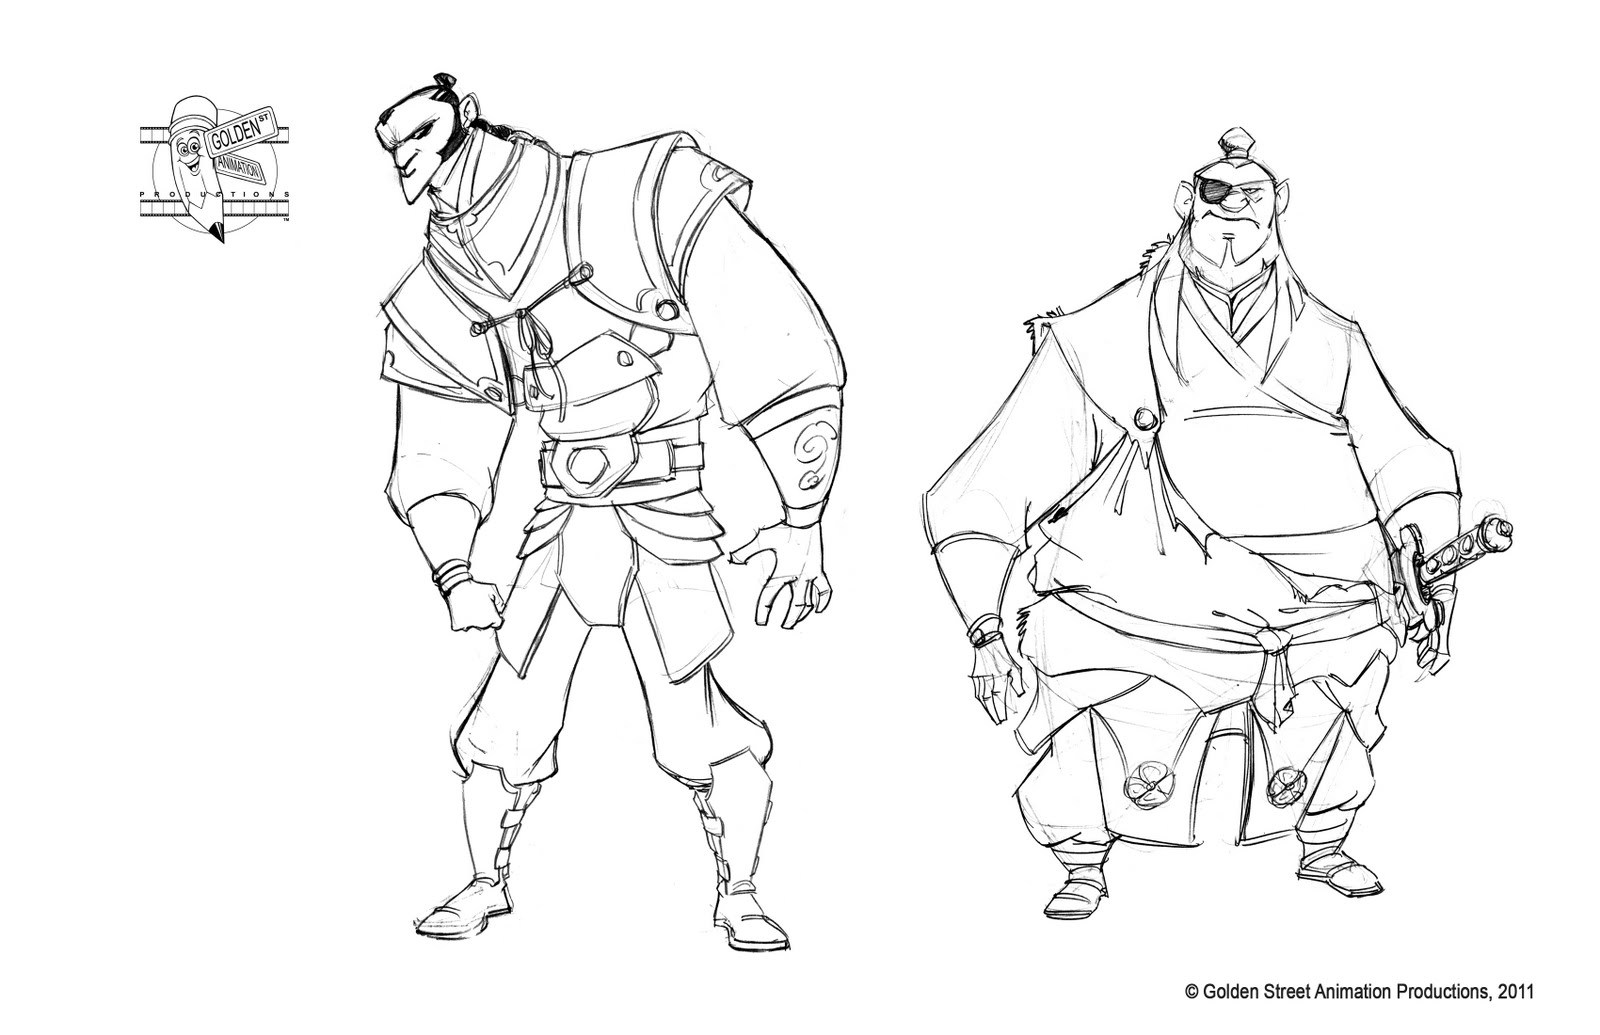 Monkey King Designs by GSAP